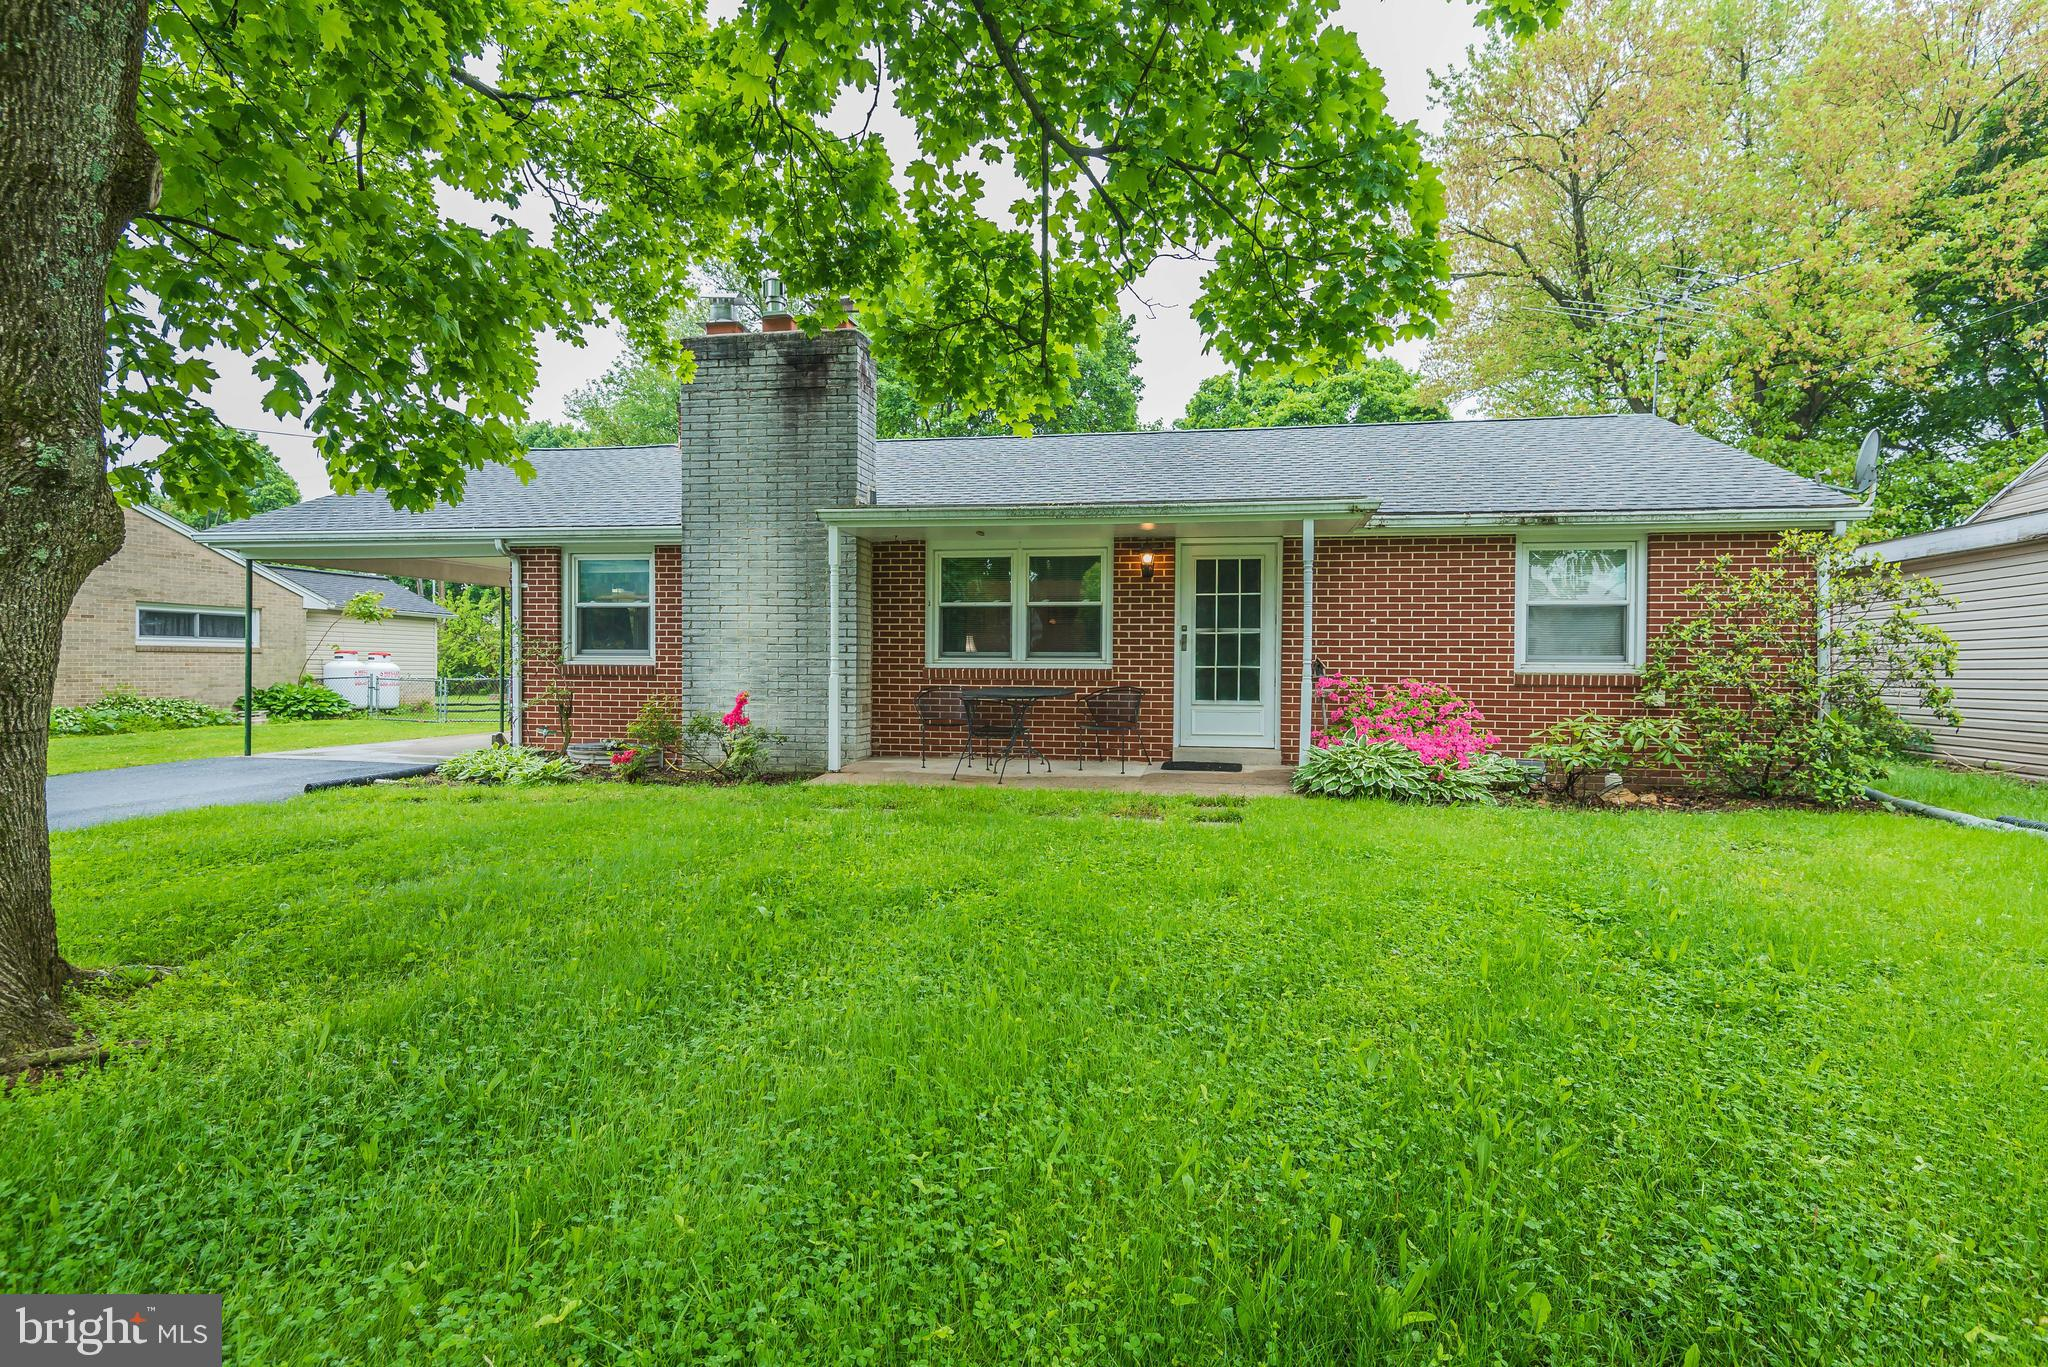 705 HIGHLAND AVENUE, MOUNT HOLLY SPRINGS, PA 17065